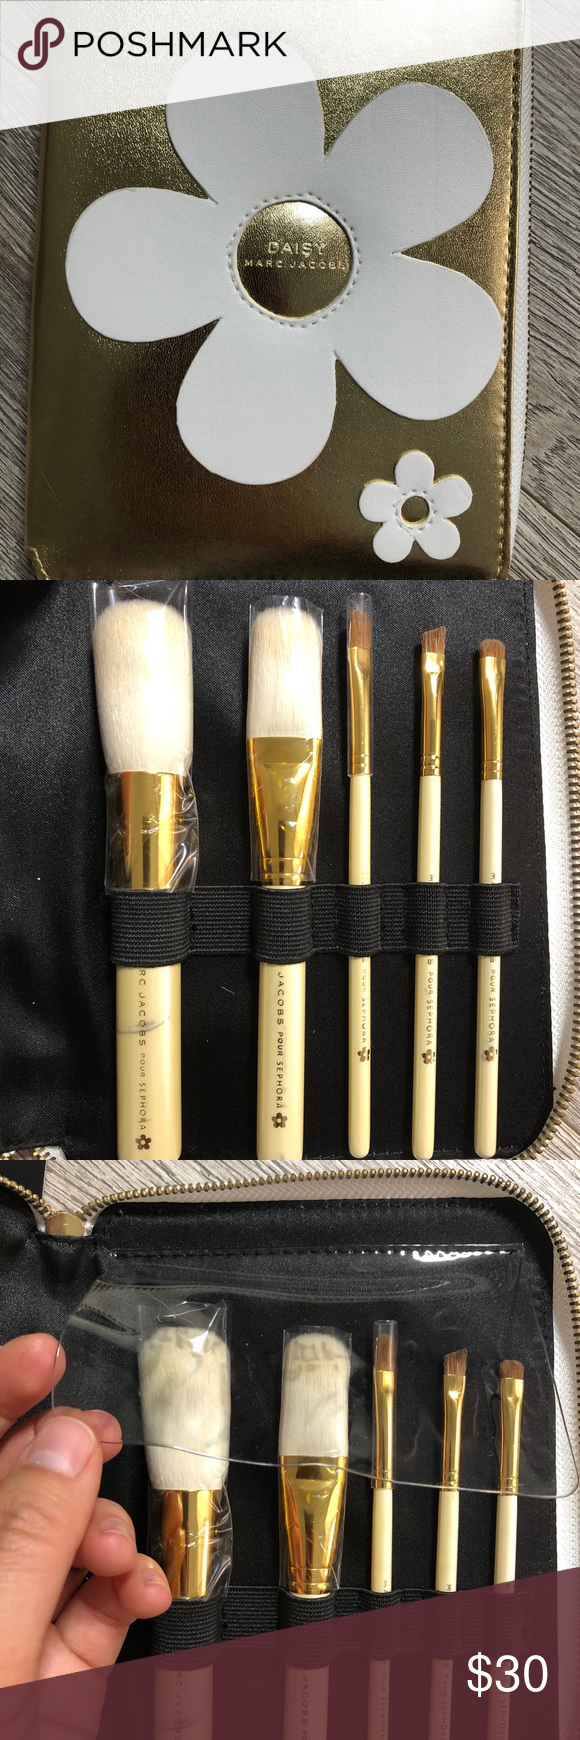 Daisy Marc Jacobs Makeup Brush Set in 2020 Marc jacobs